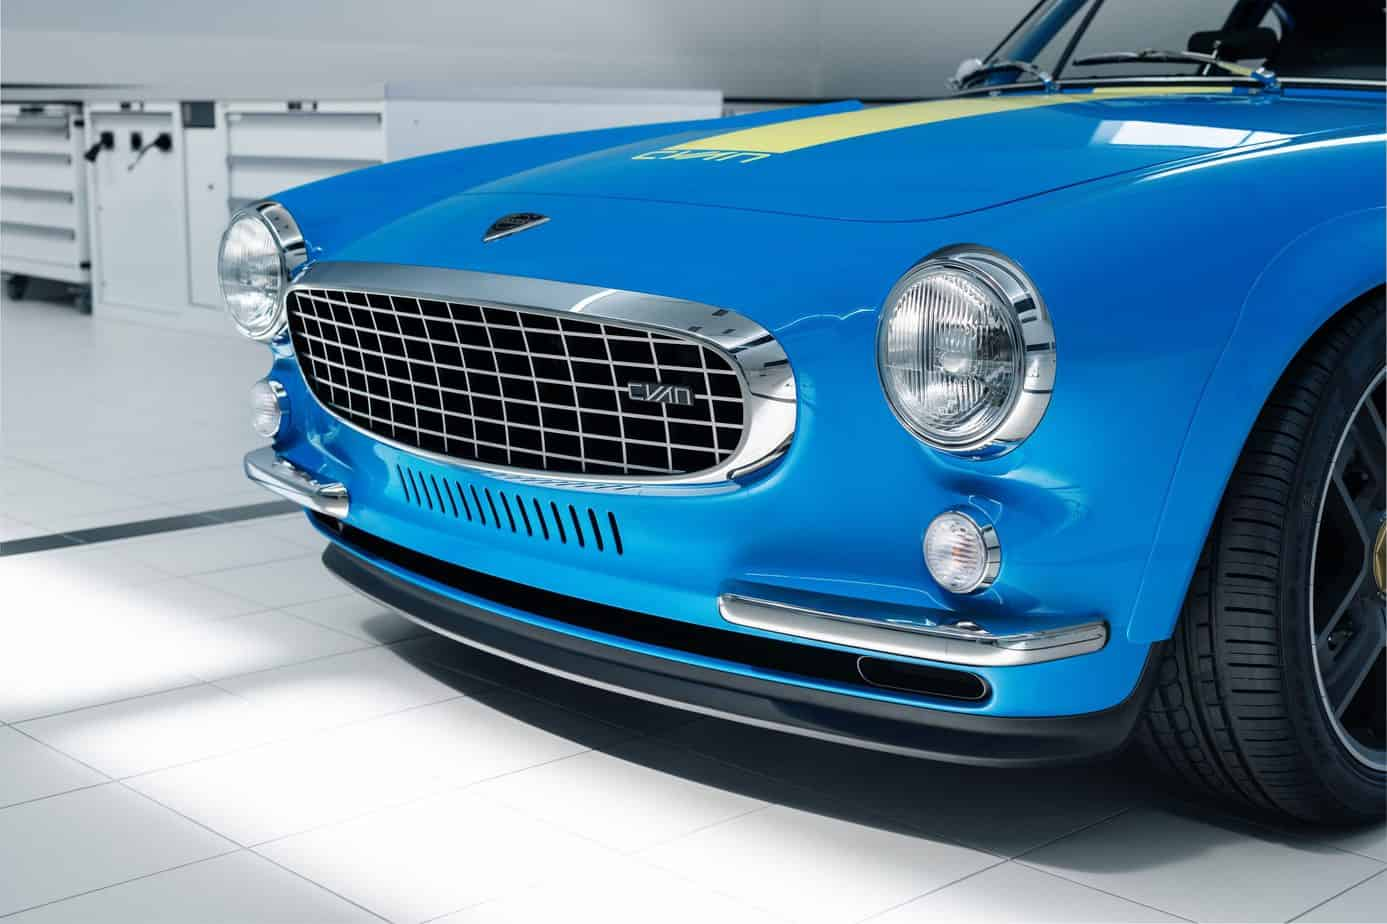 Volvo P1800 Cyan front view